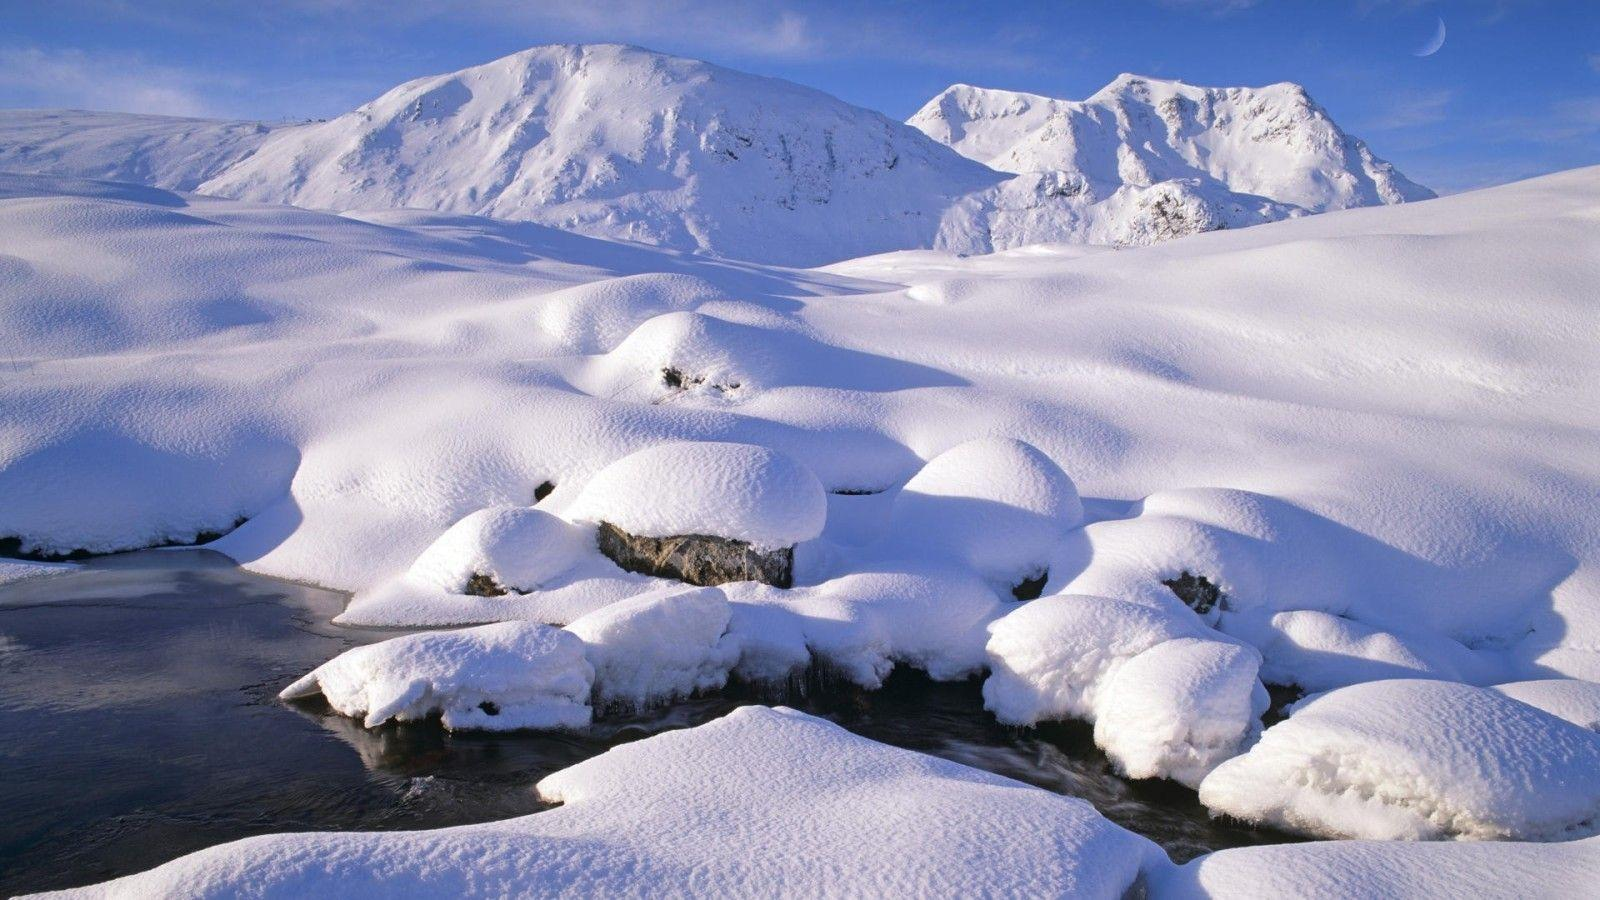 Snow Scenery Wallpapers